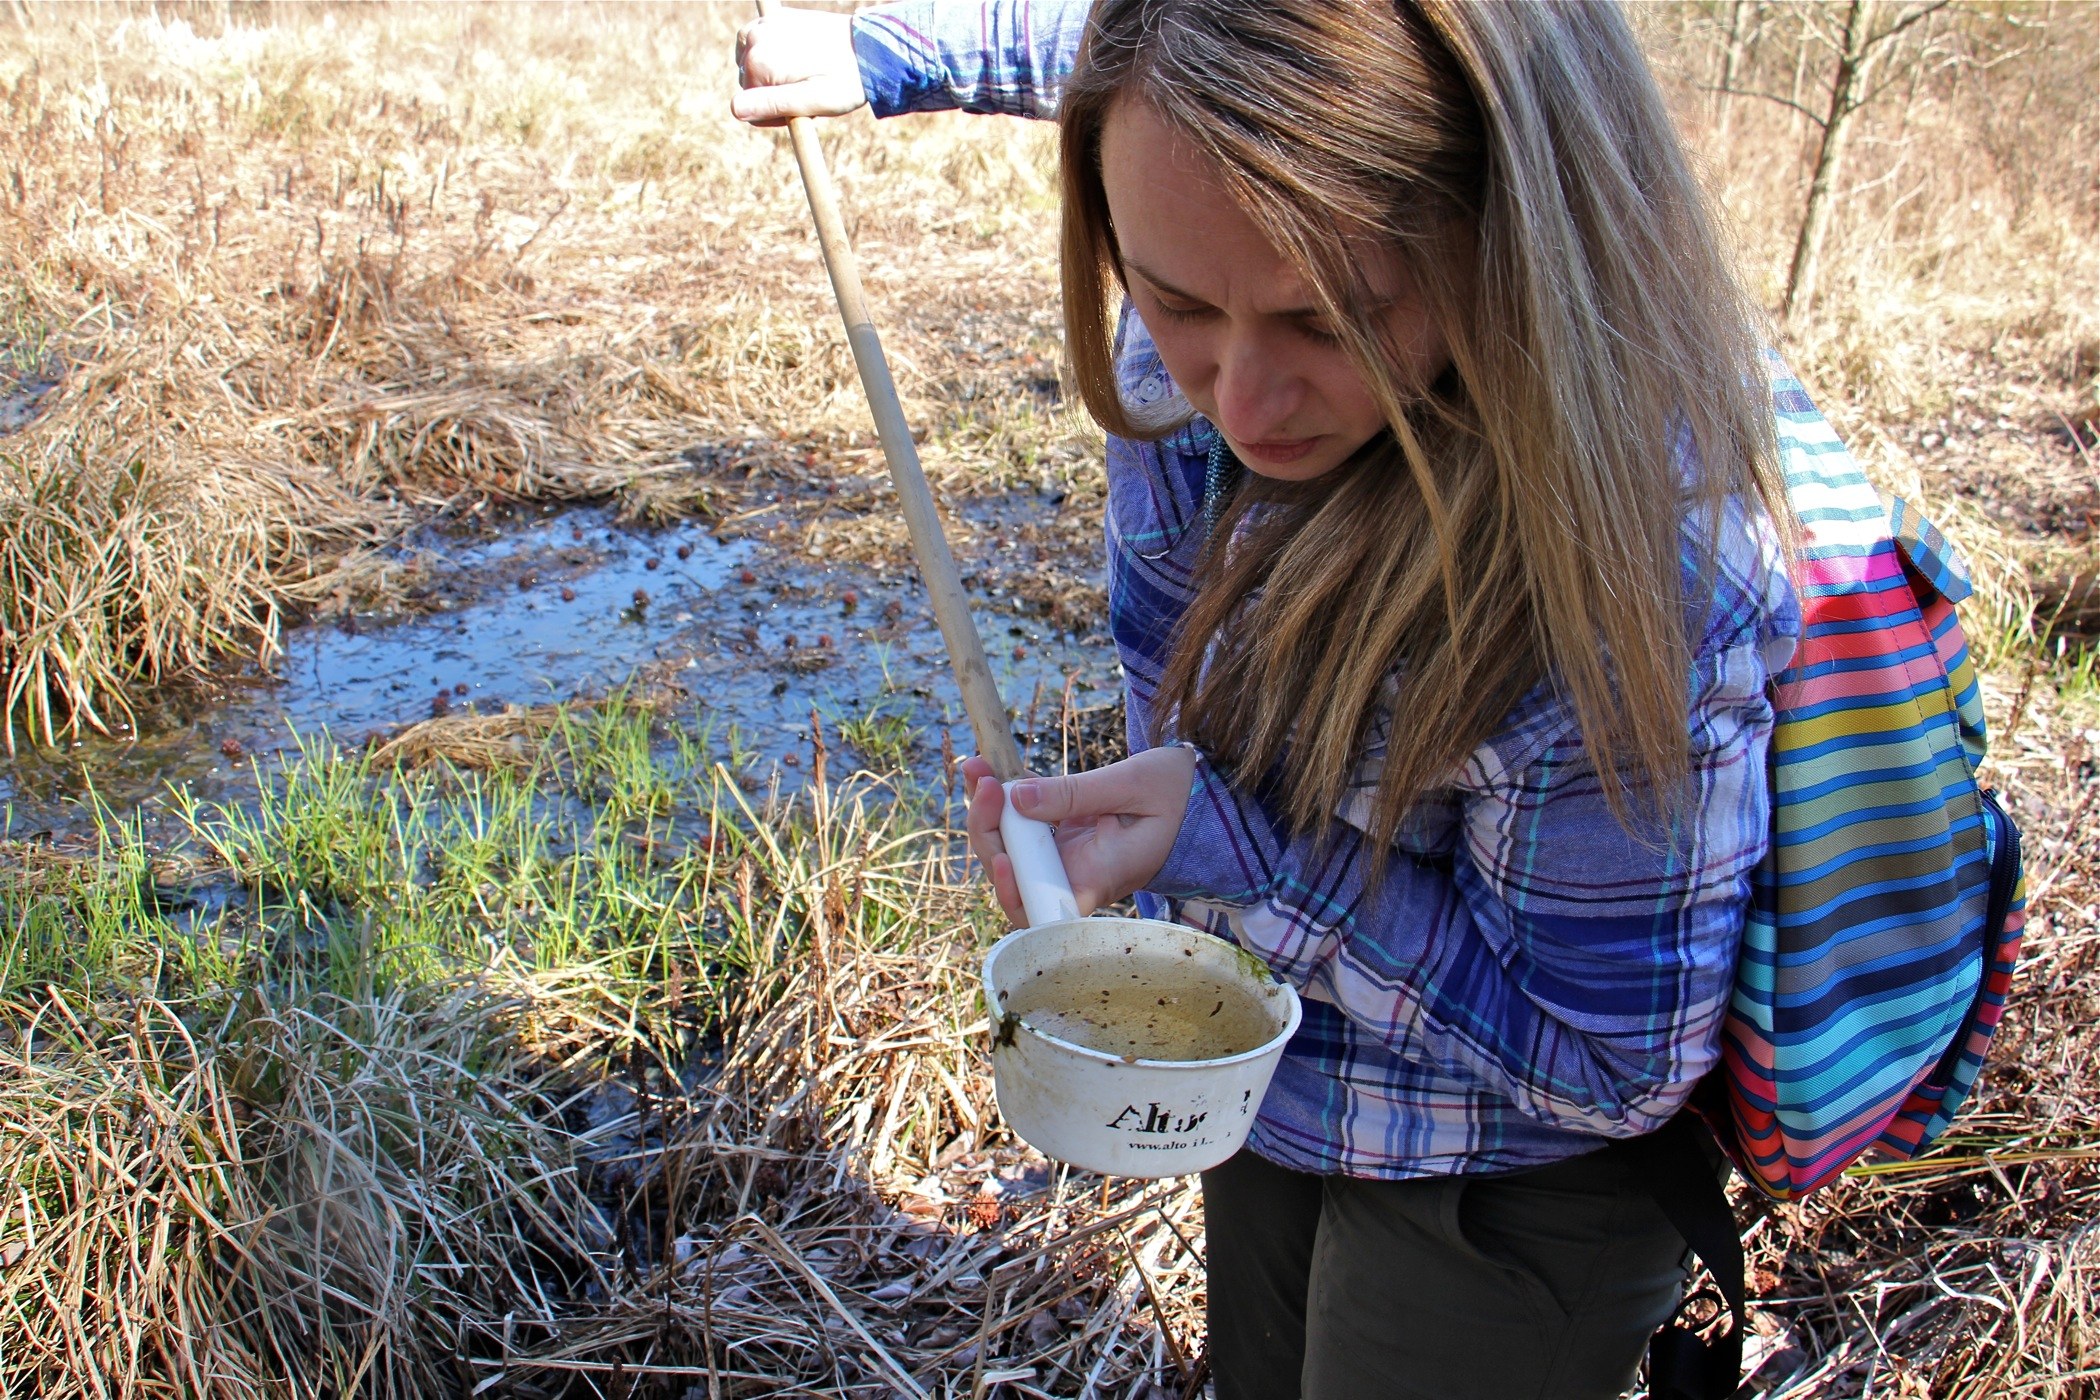 Autumn Angelus inspects a sample drawn from a vernal pool at Elmer Lake Wildlife Management Area. (Emma Lee/WHYY)